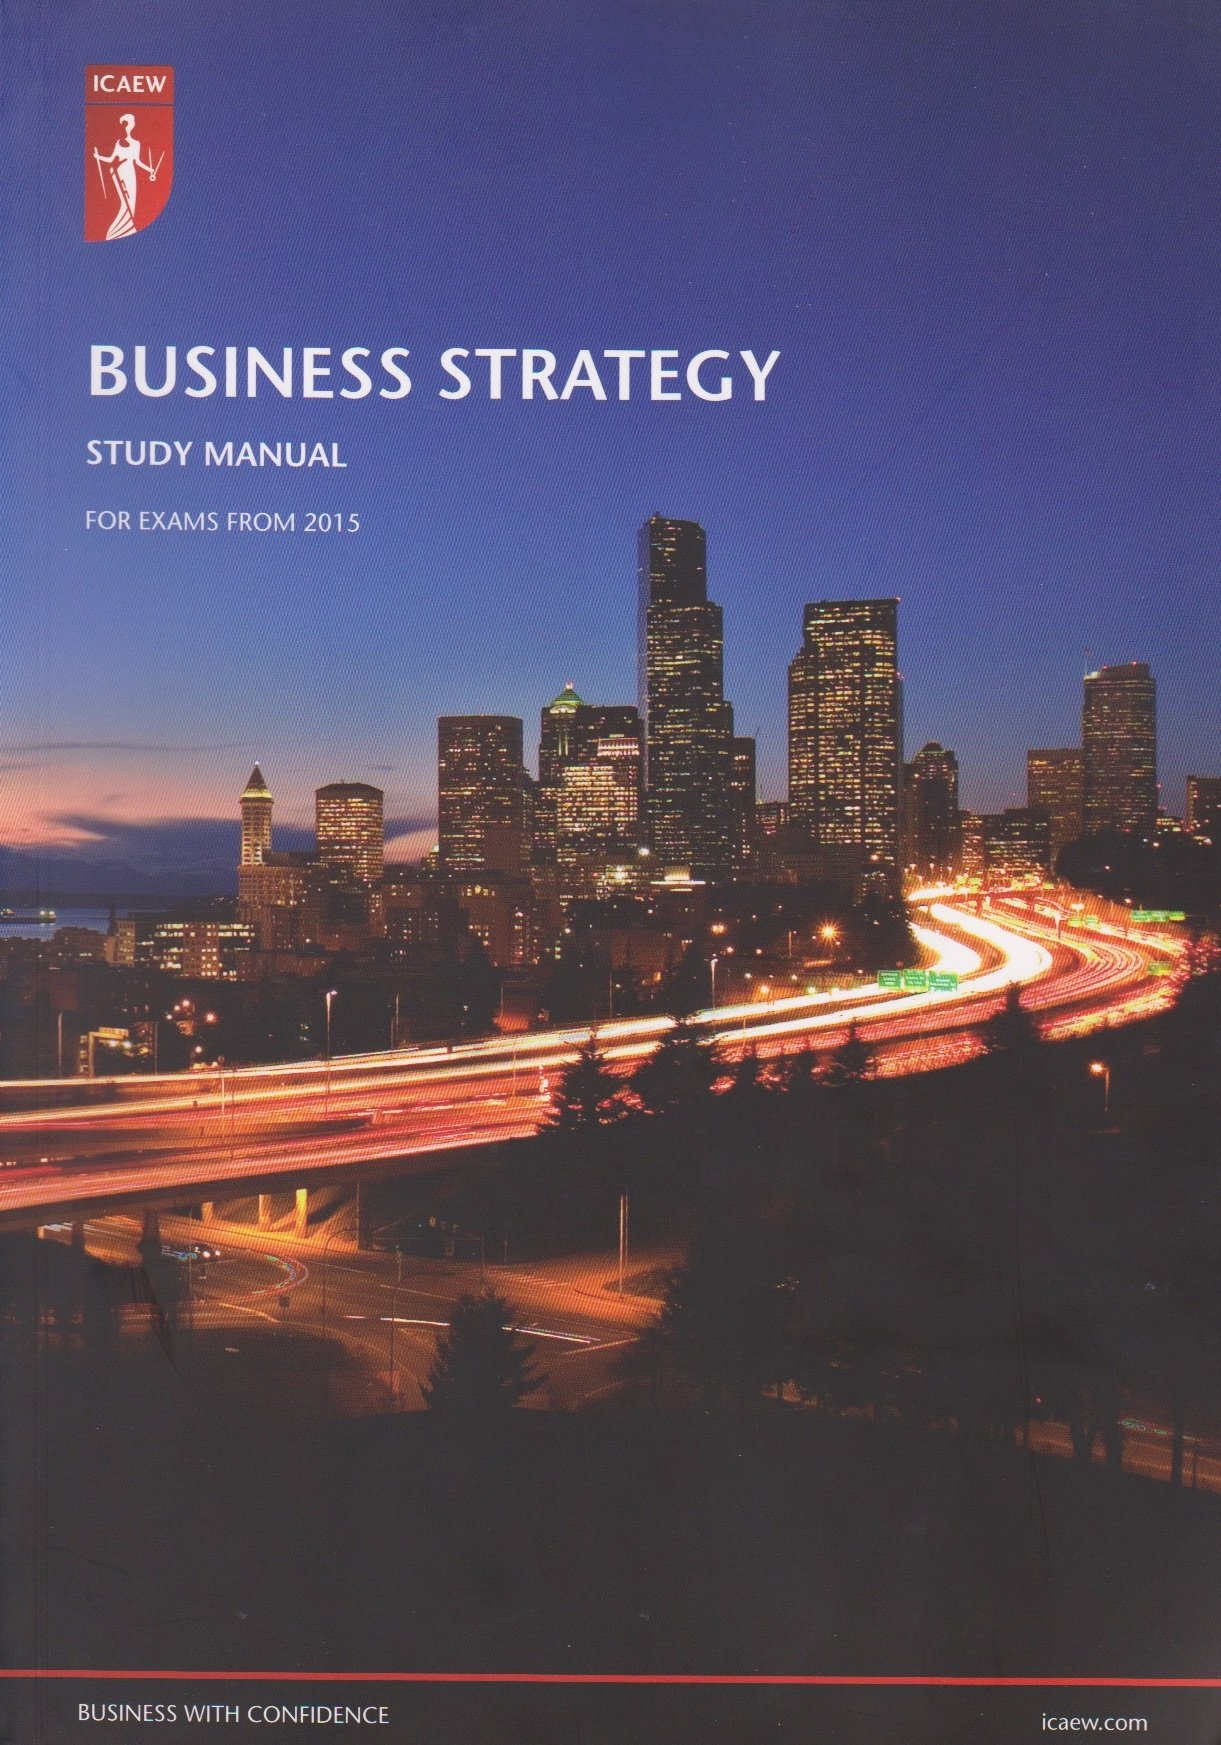 BUSINESS STRATEGY: STUDY MANUAL For exams from 2015: THE INSTITUTE OF  CHARTERED ACCOUNTANTS IN ENGLAND AND WALES: 9780857609922: Amazon.com: Books